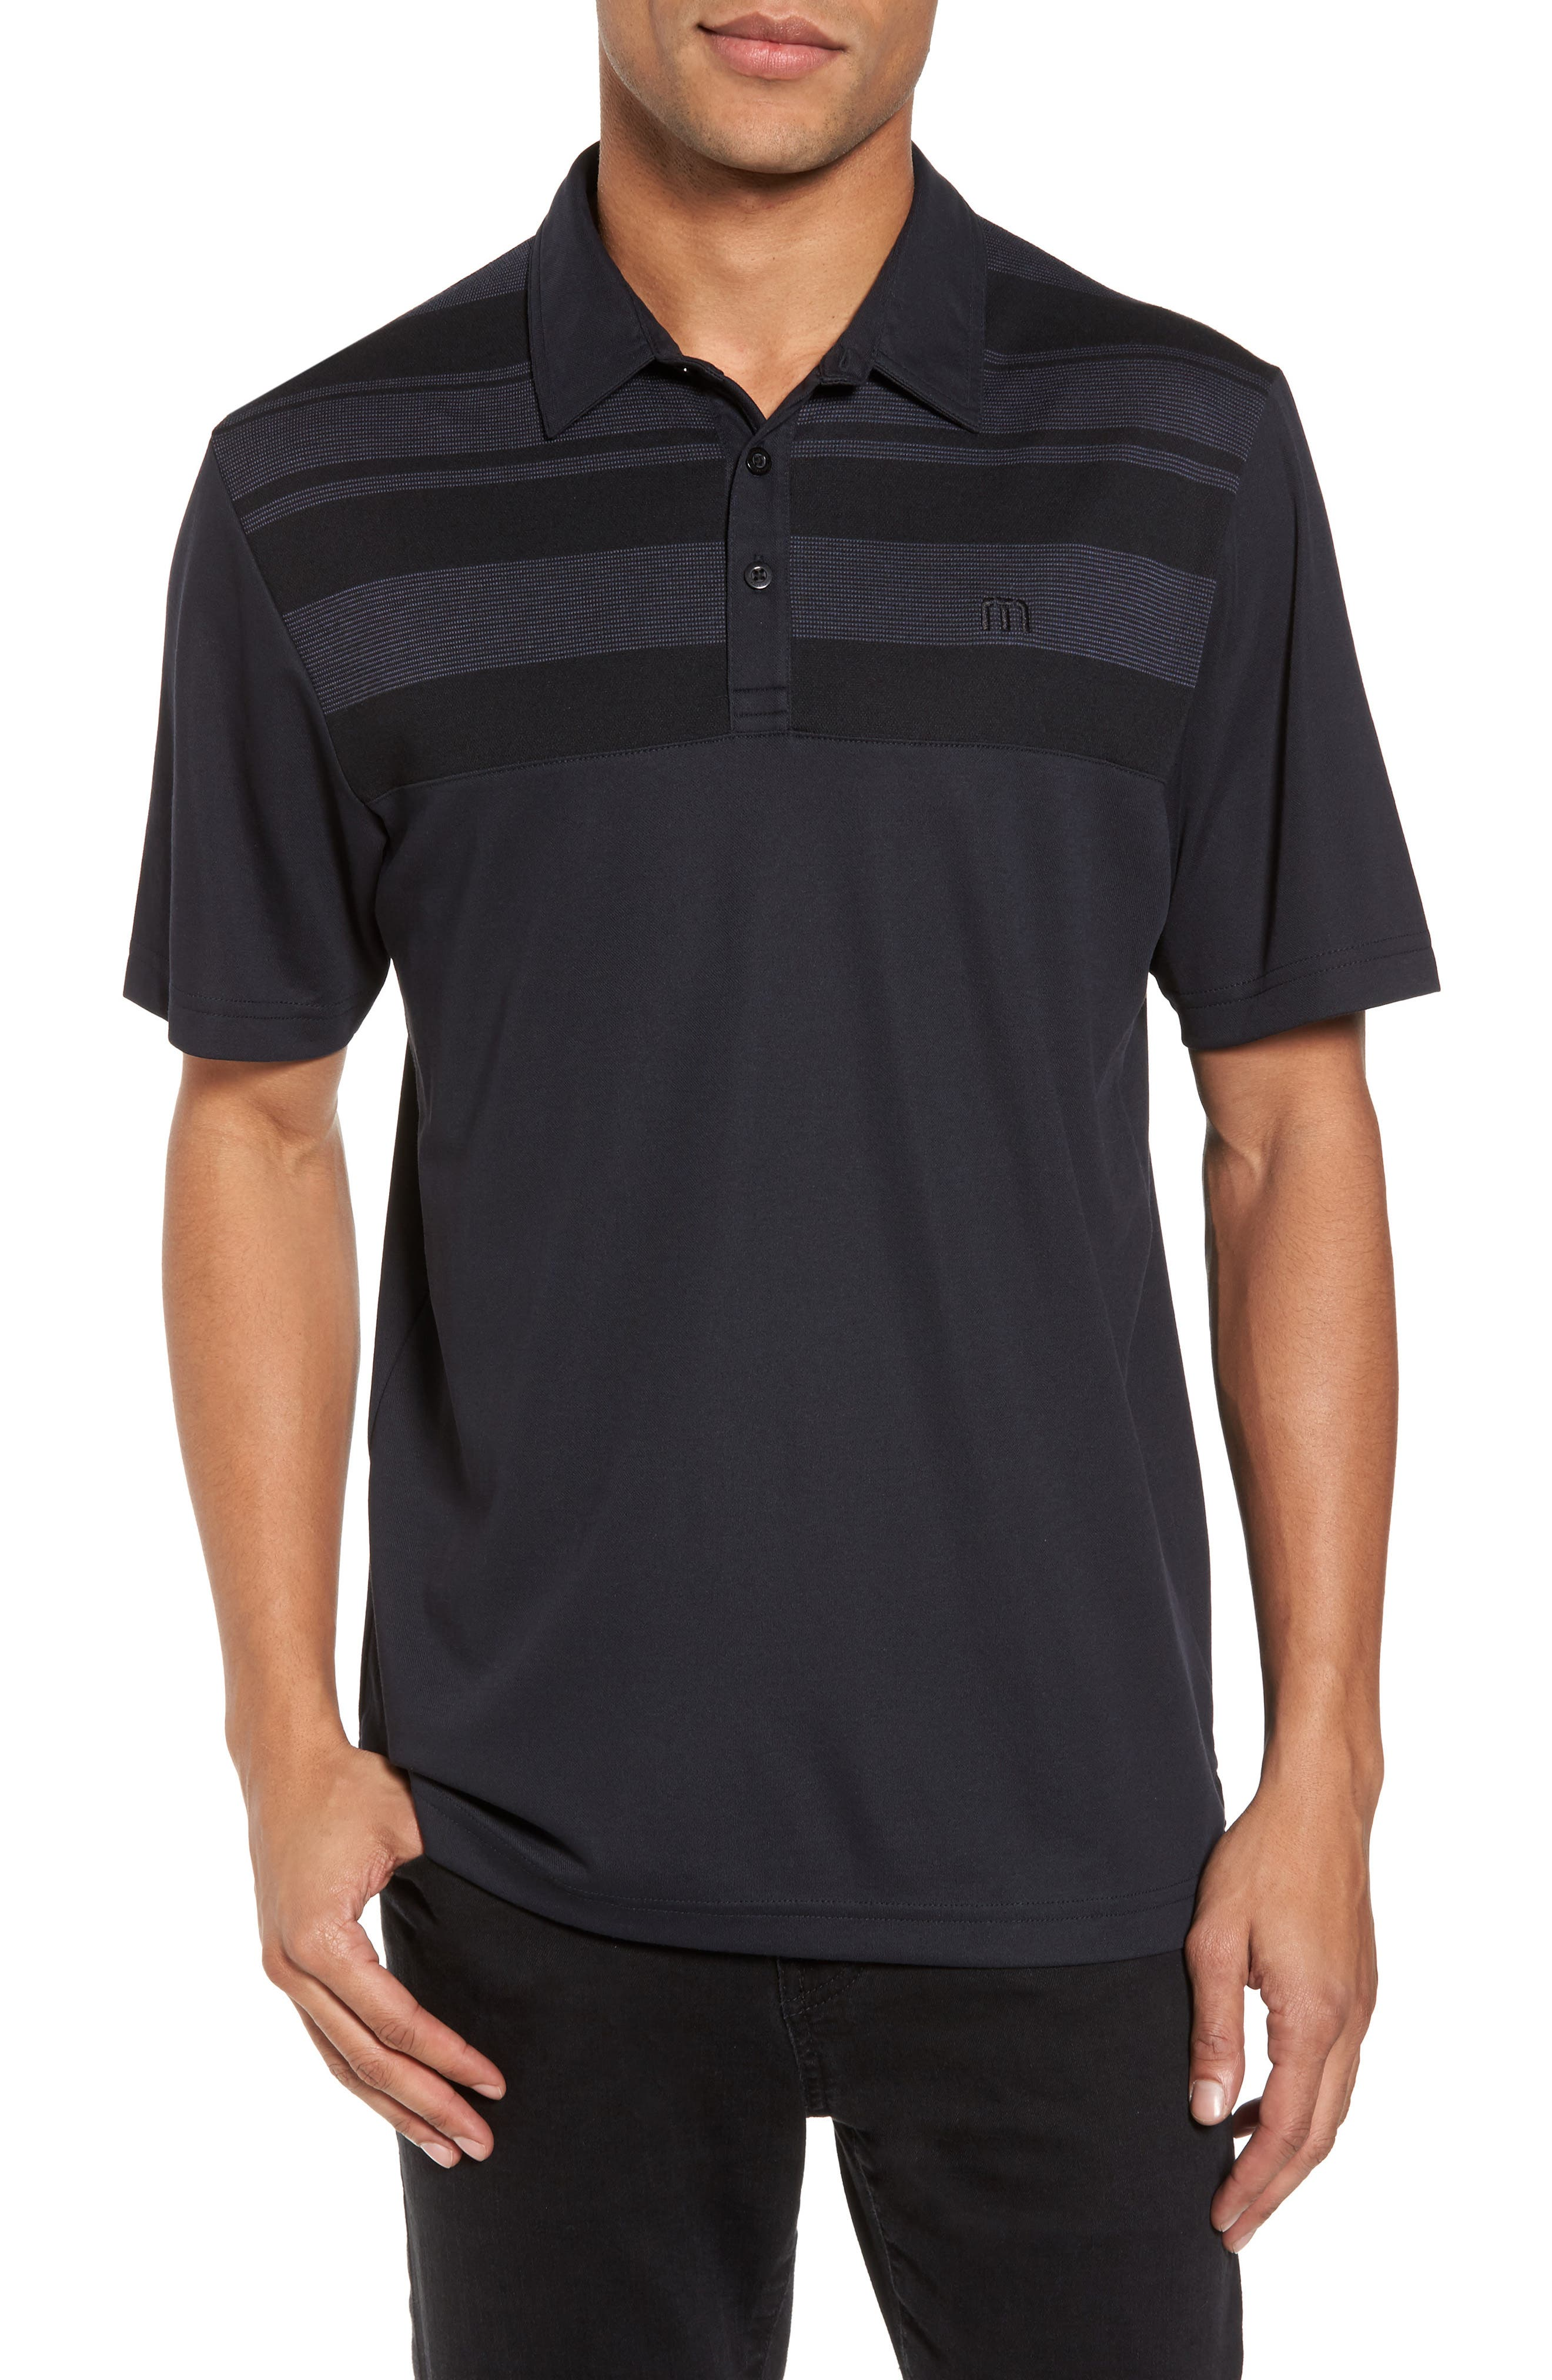 Alternate Image 1 Selected - Travis Mathew Sweet Teets Jacquard Detail Polo